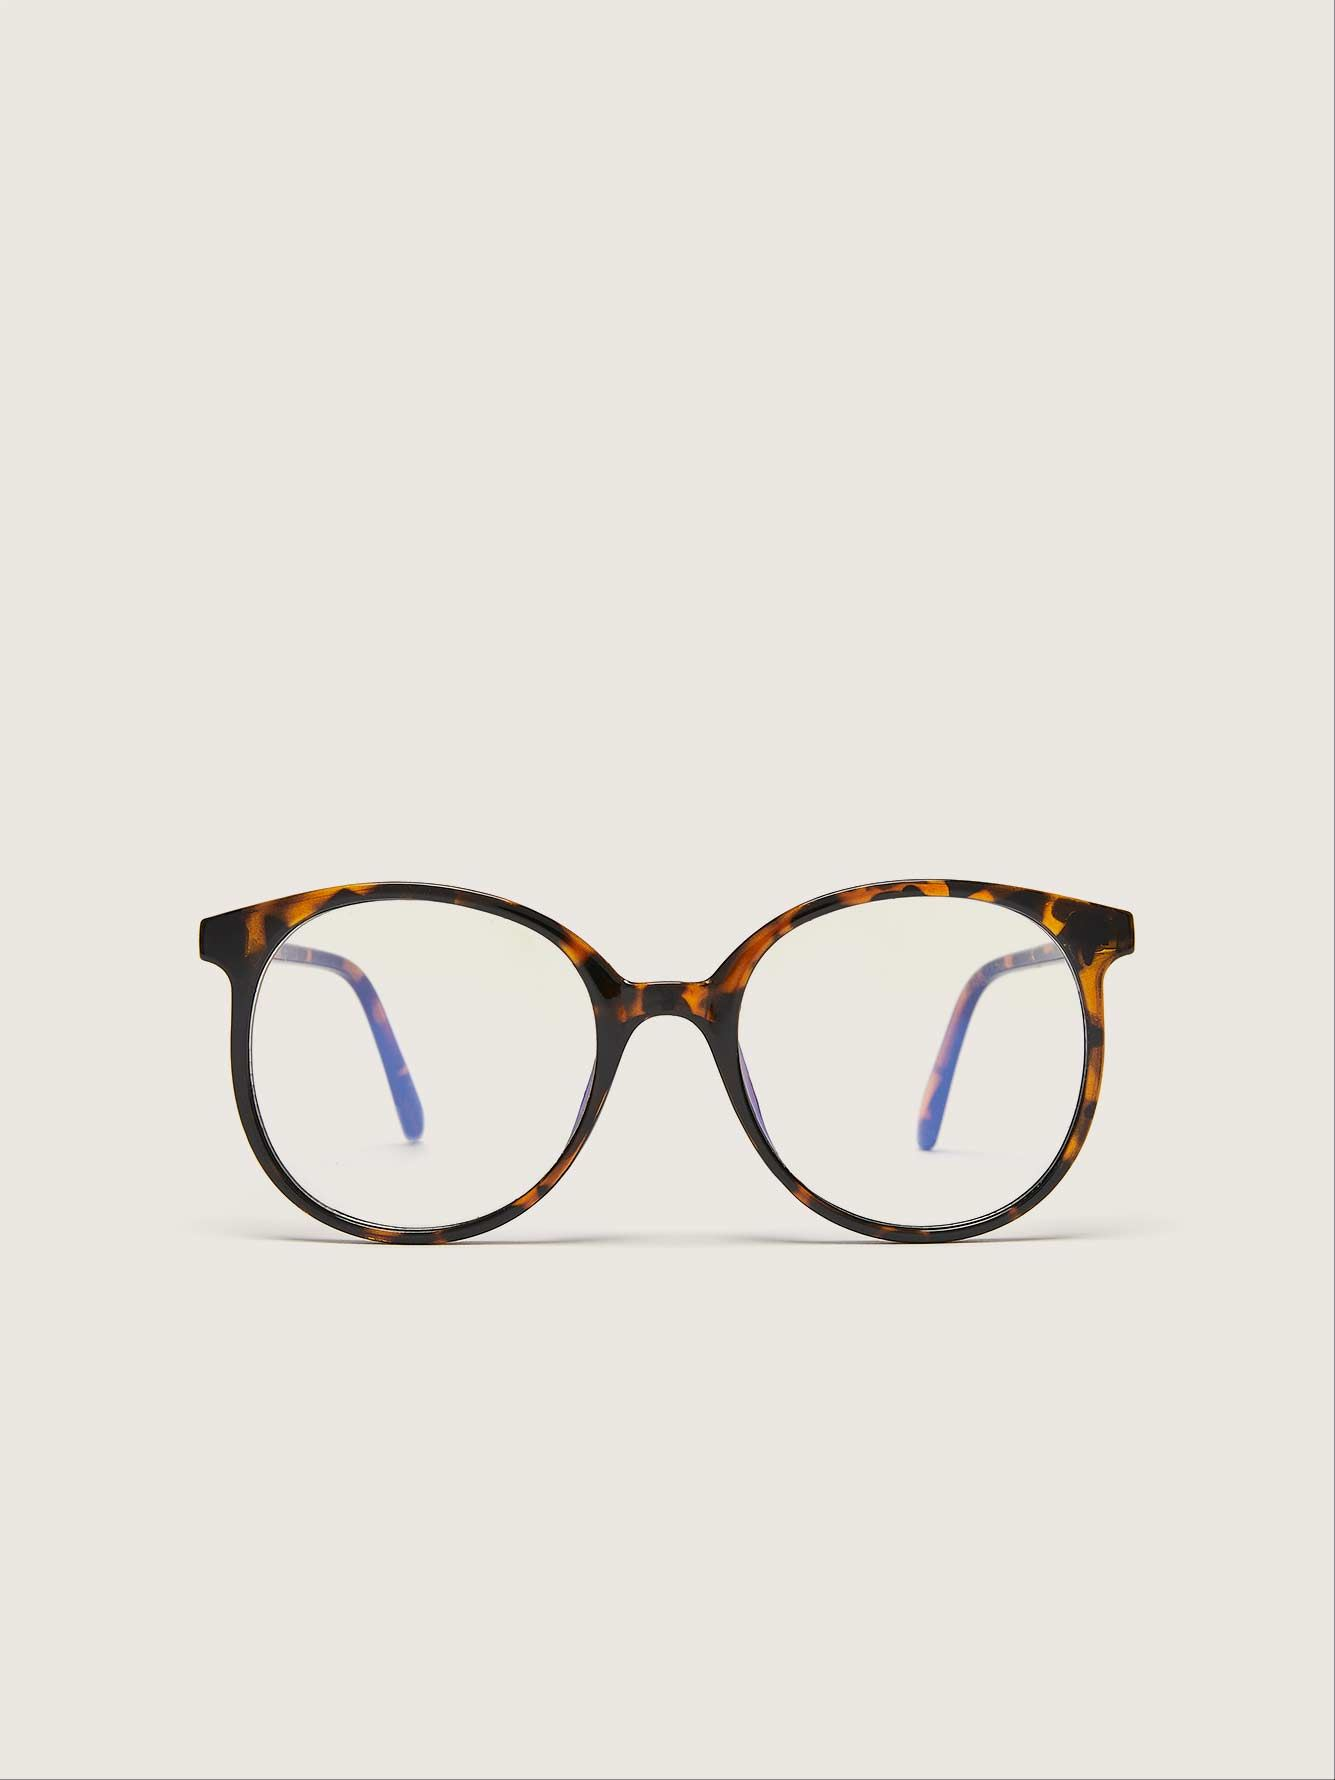 Pantos Blue Lense Glasses - Addition Elle